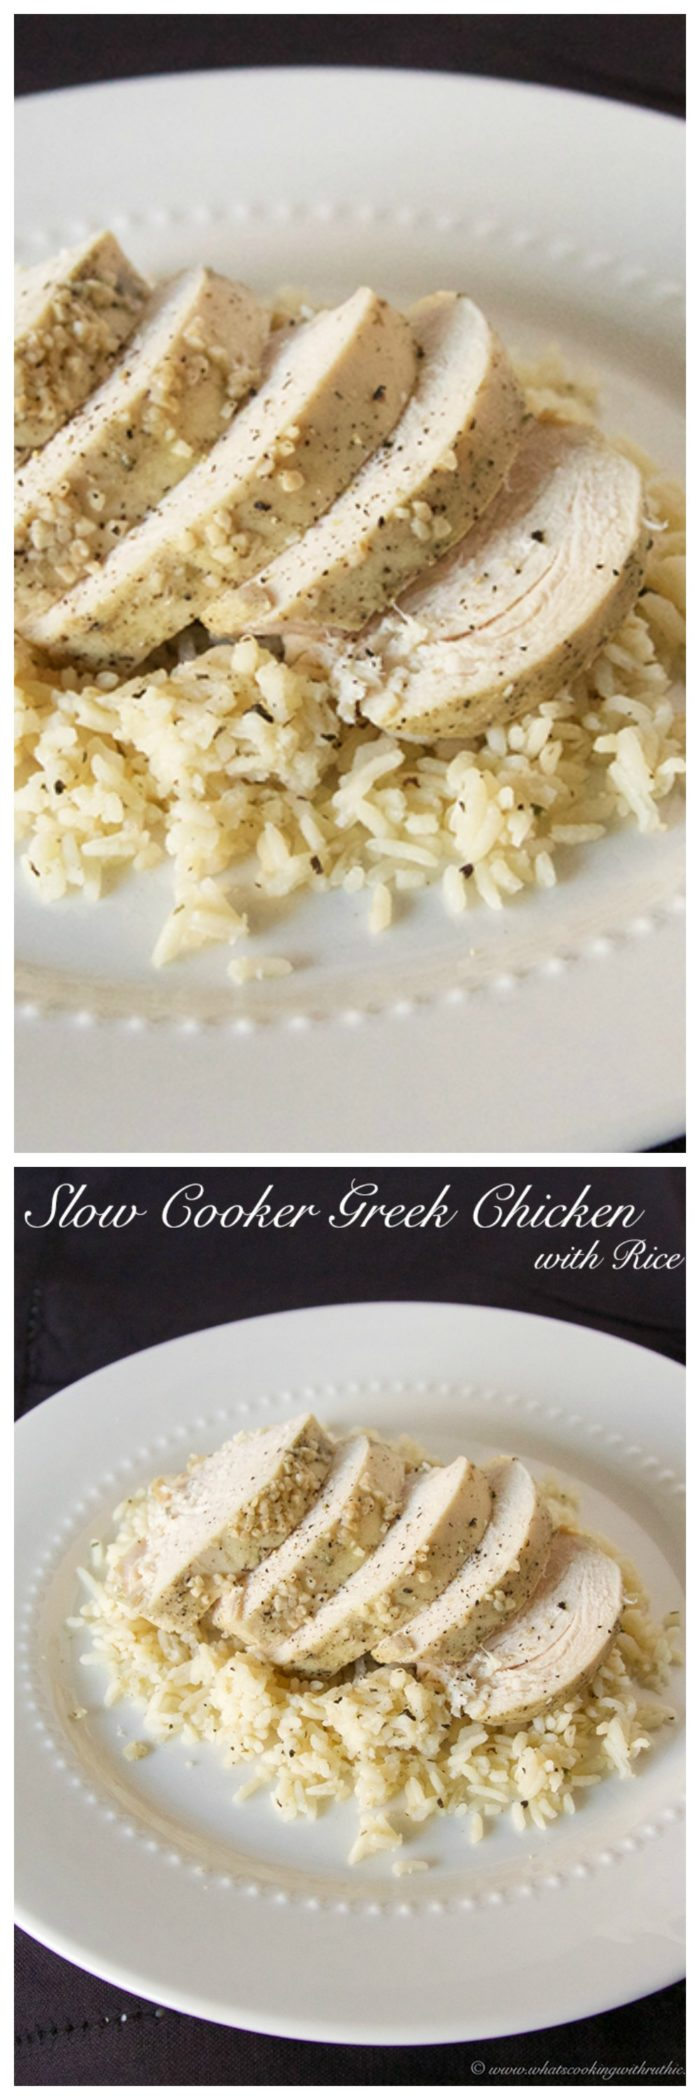 Slow Cooker Greek Chicken with Rice on www.cookingwithruthie.com is a delicious weeknight recipe!